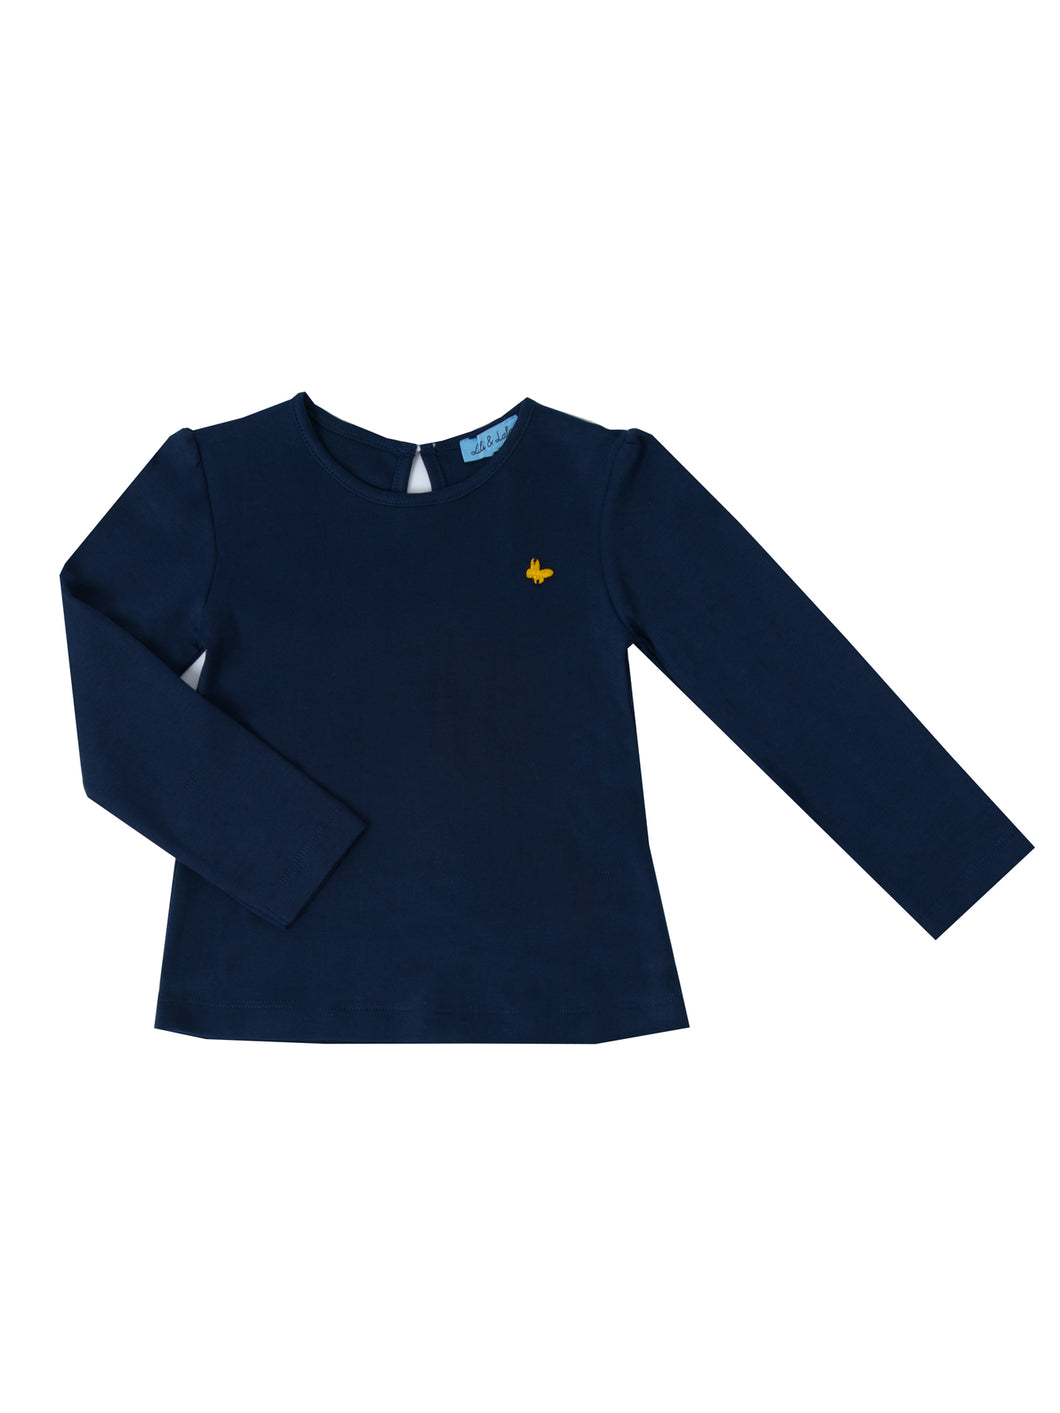 Melia long sleeved t-shirt, navy